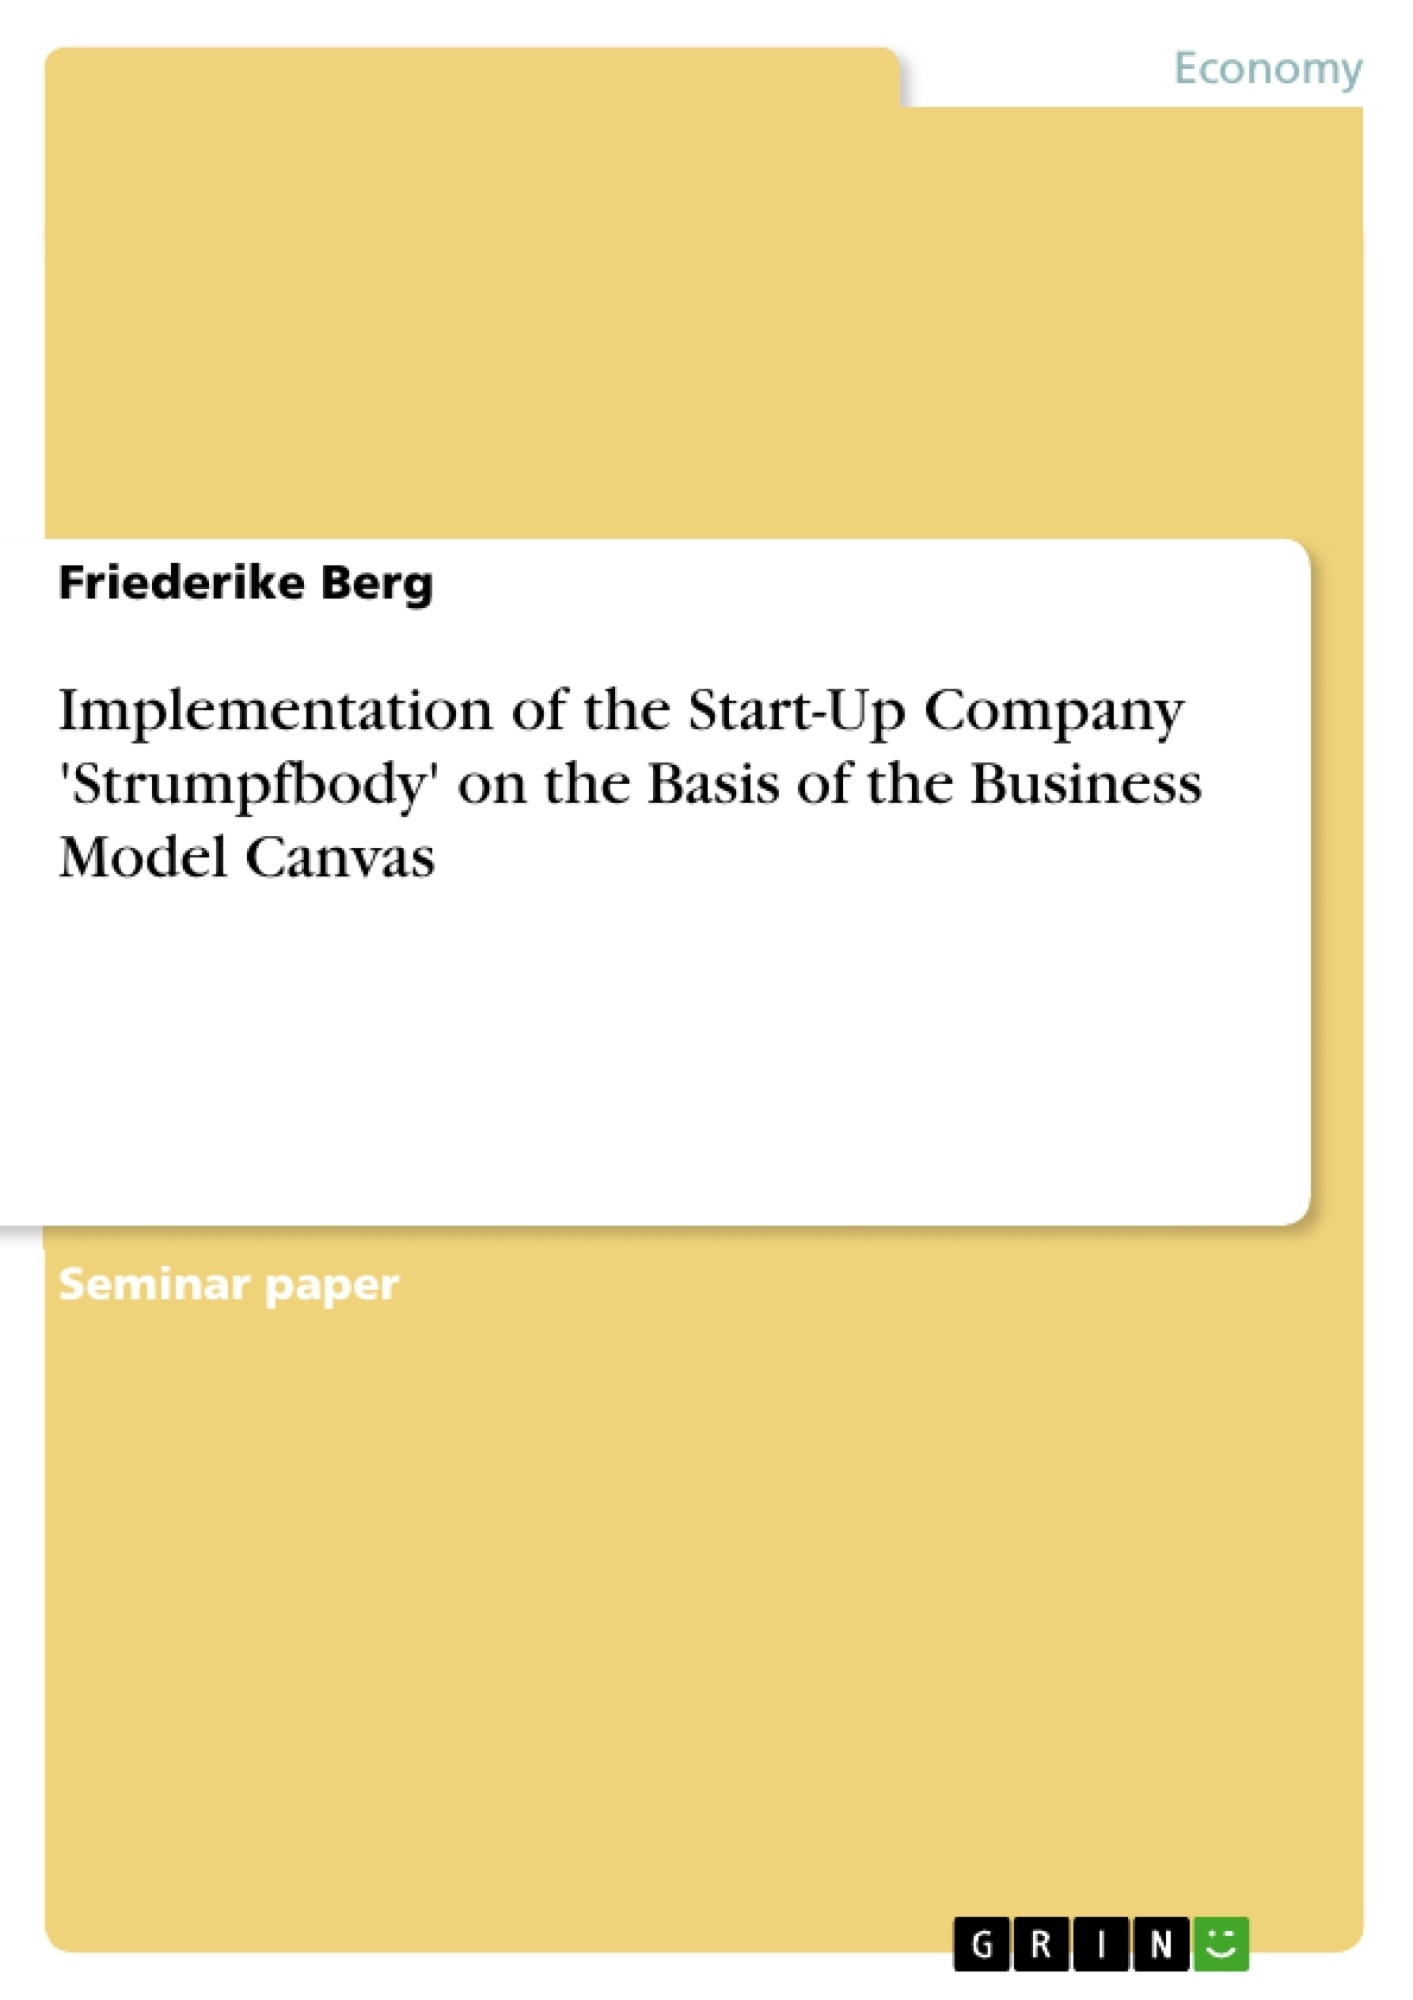 Title: Implementation of the Start-Up Company 'Strumpfbody' on the Basis of the Business Model Canvas